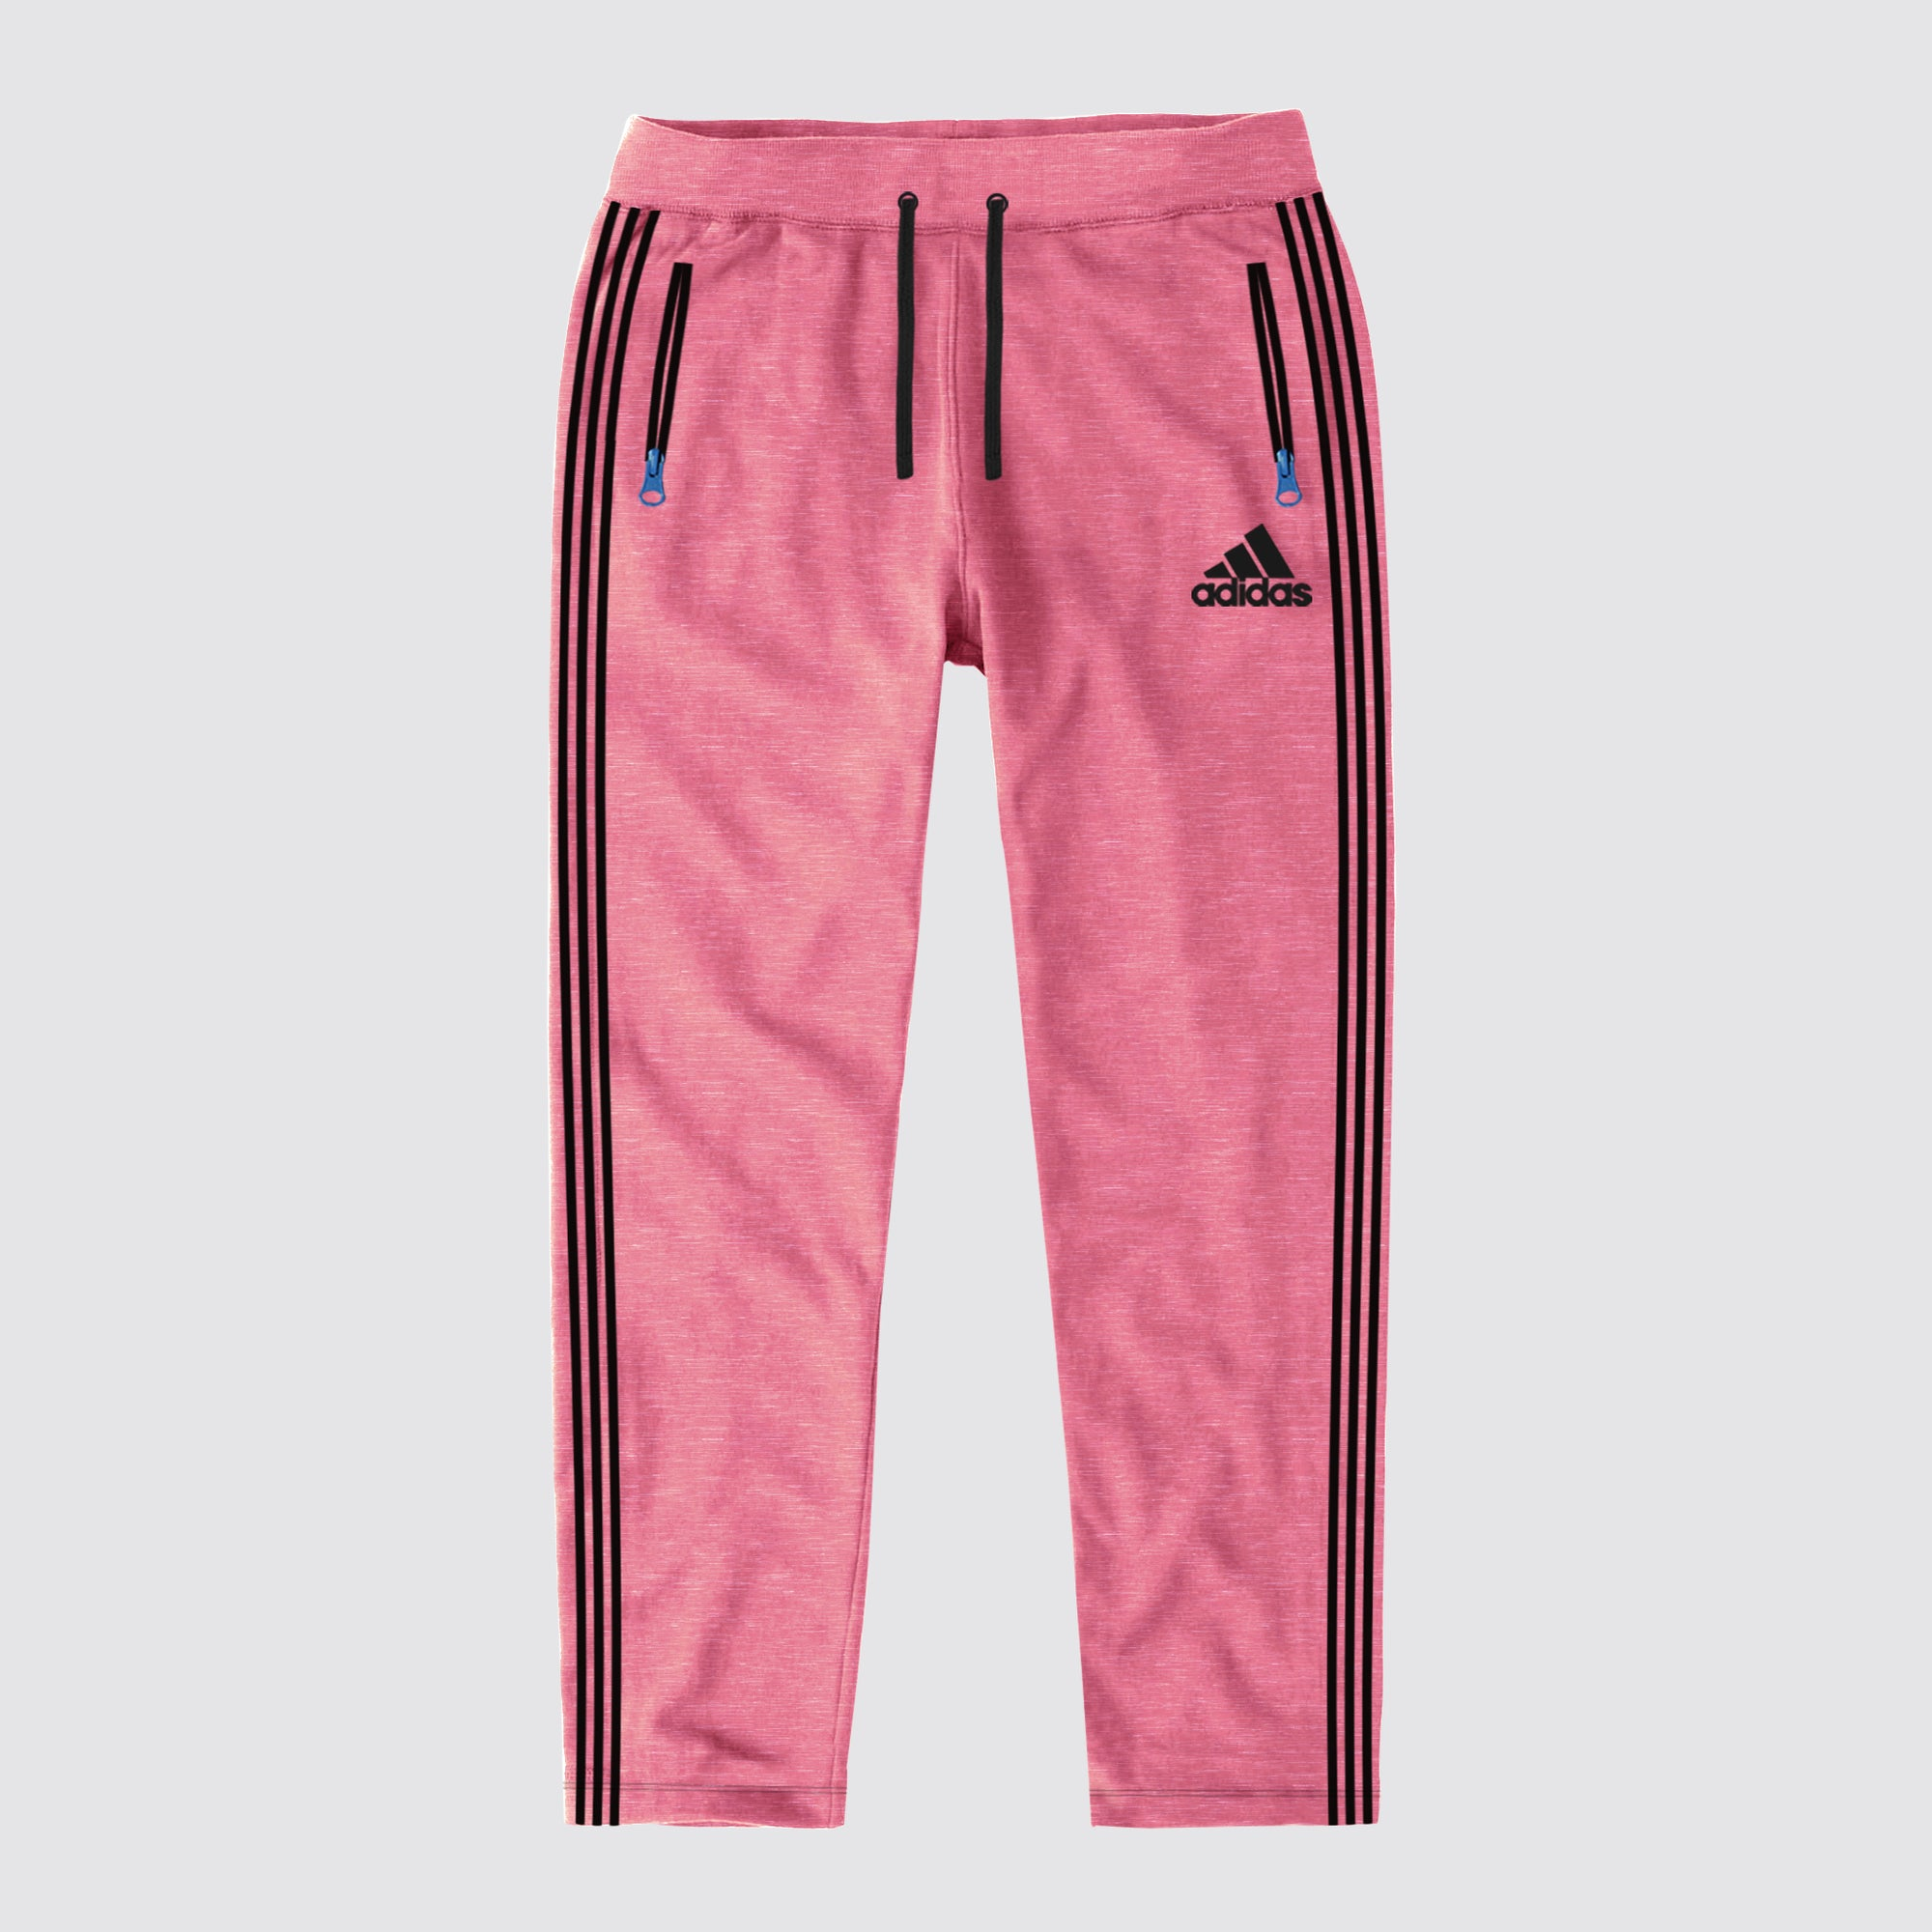 Adidas Single Jersey Regular Fit Trouser For Men-Pink Melange & Dark Navy Stripe-BE8680